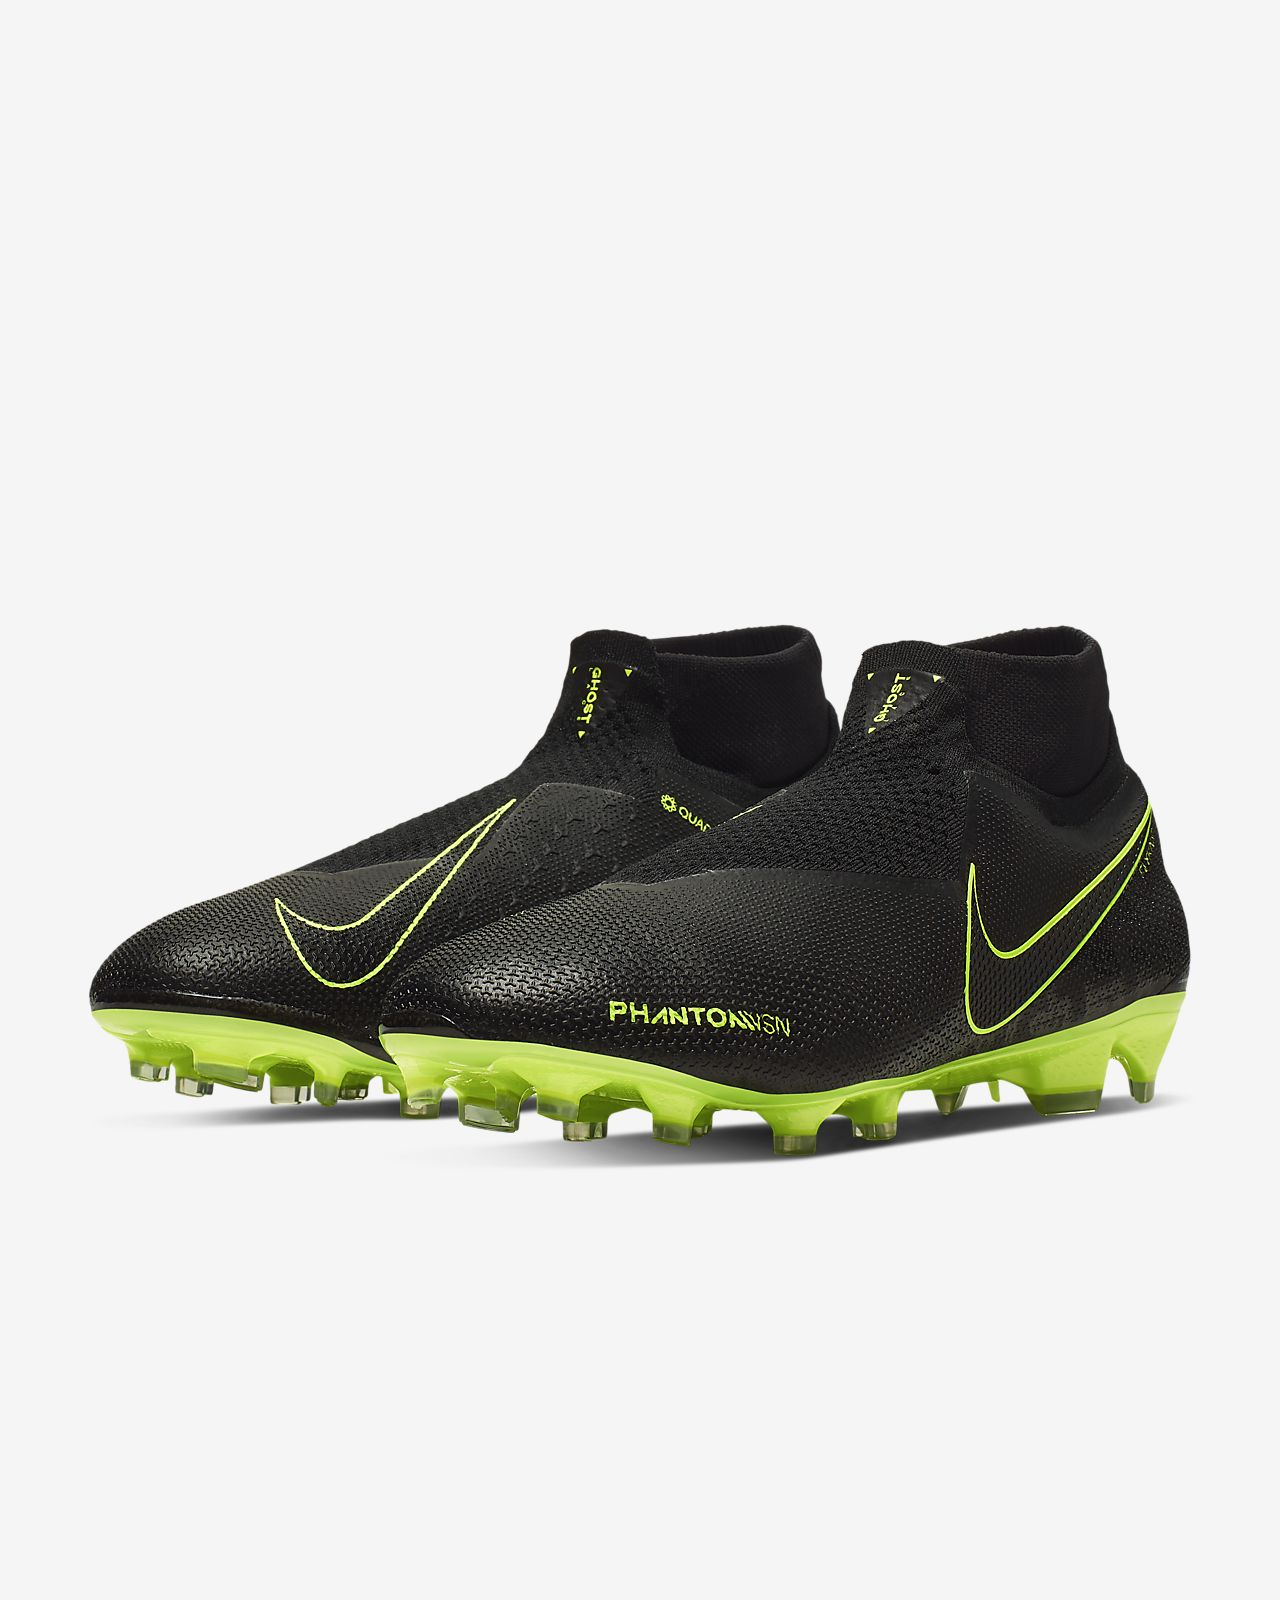 Nike Phantom Vision Elite Dynamic Fit FG Firm Ground Soccer Cleat